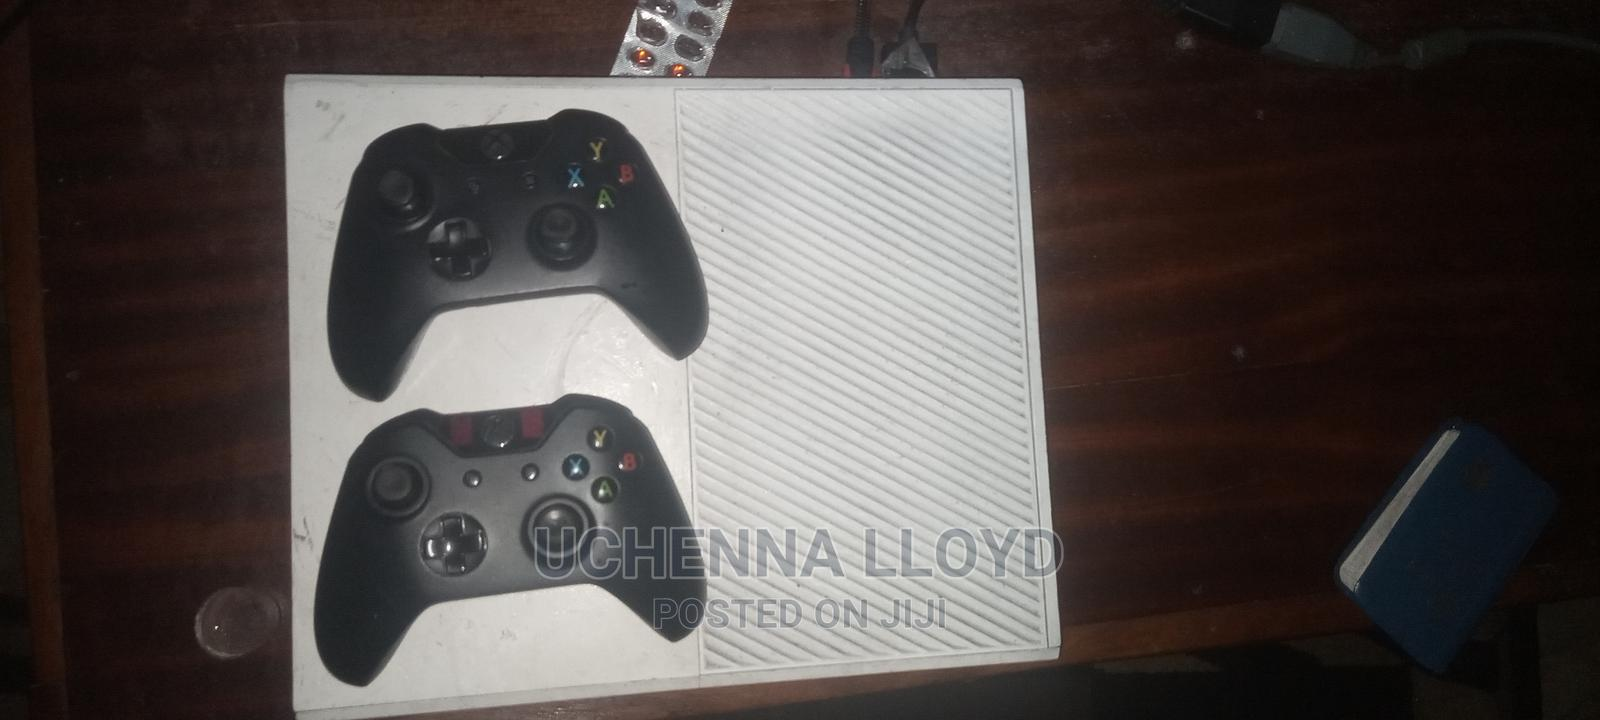 Archive: Xbox One With 2 Pads and 5 Cds for Sale